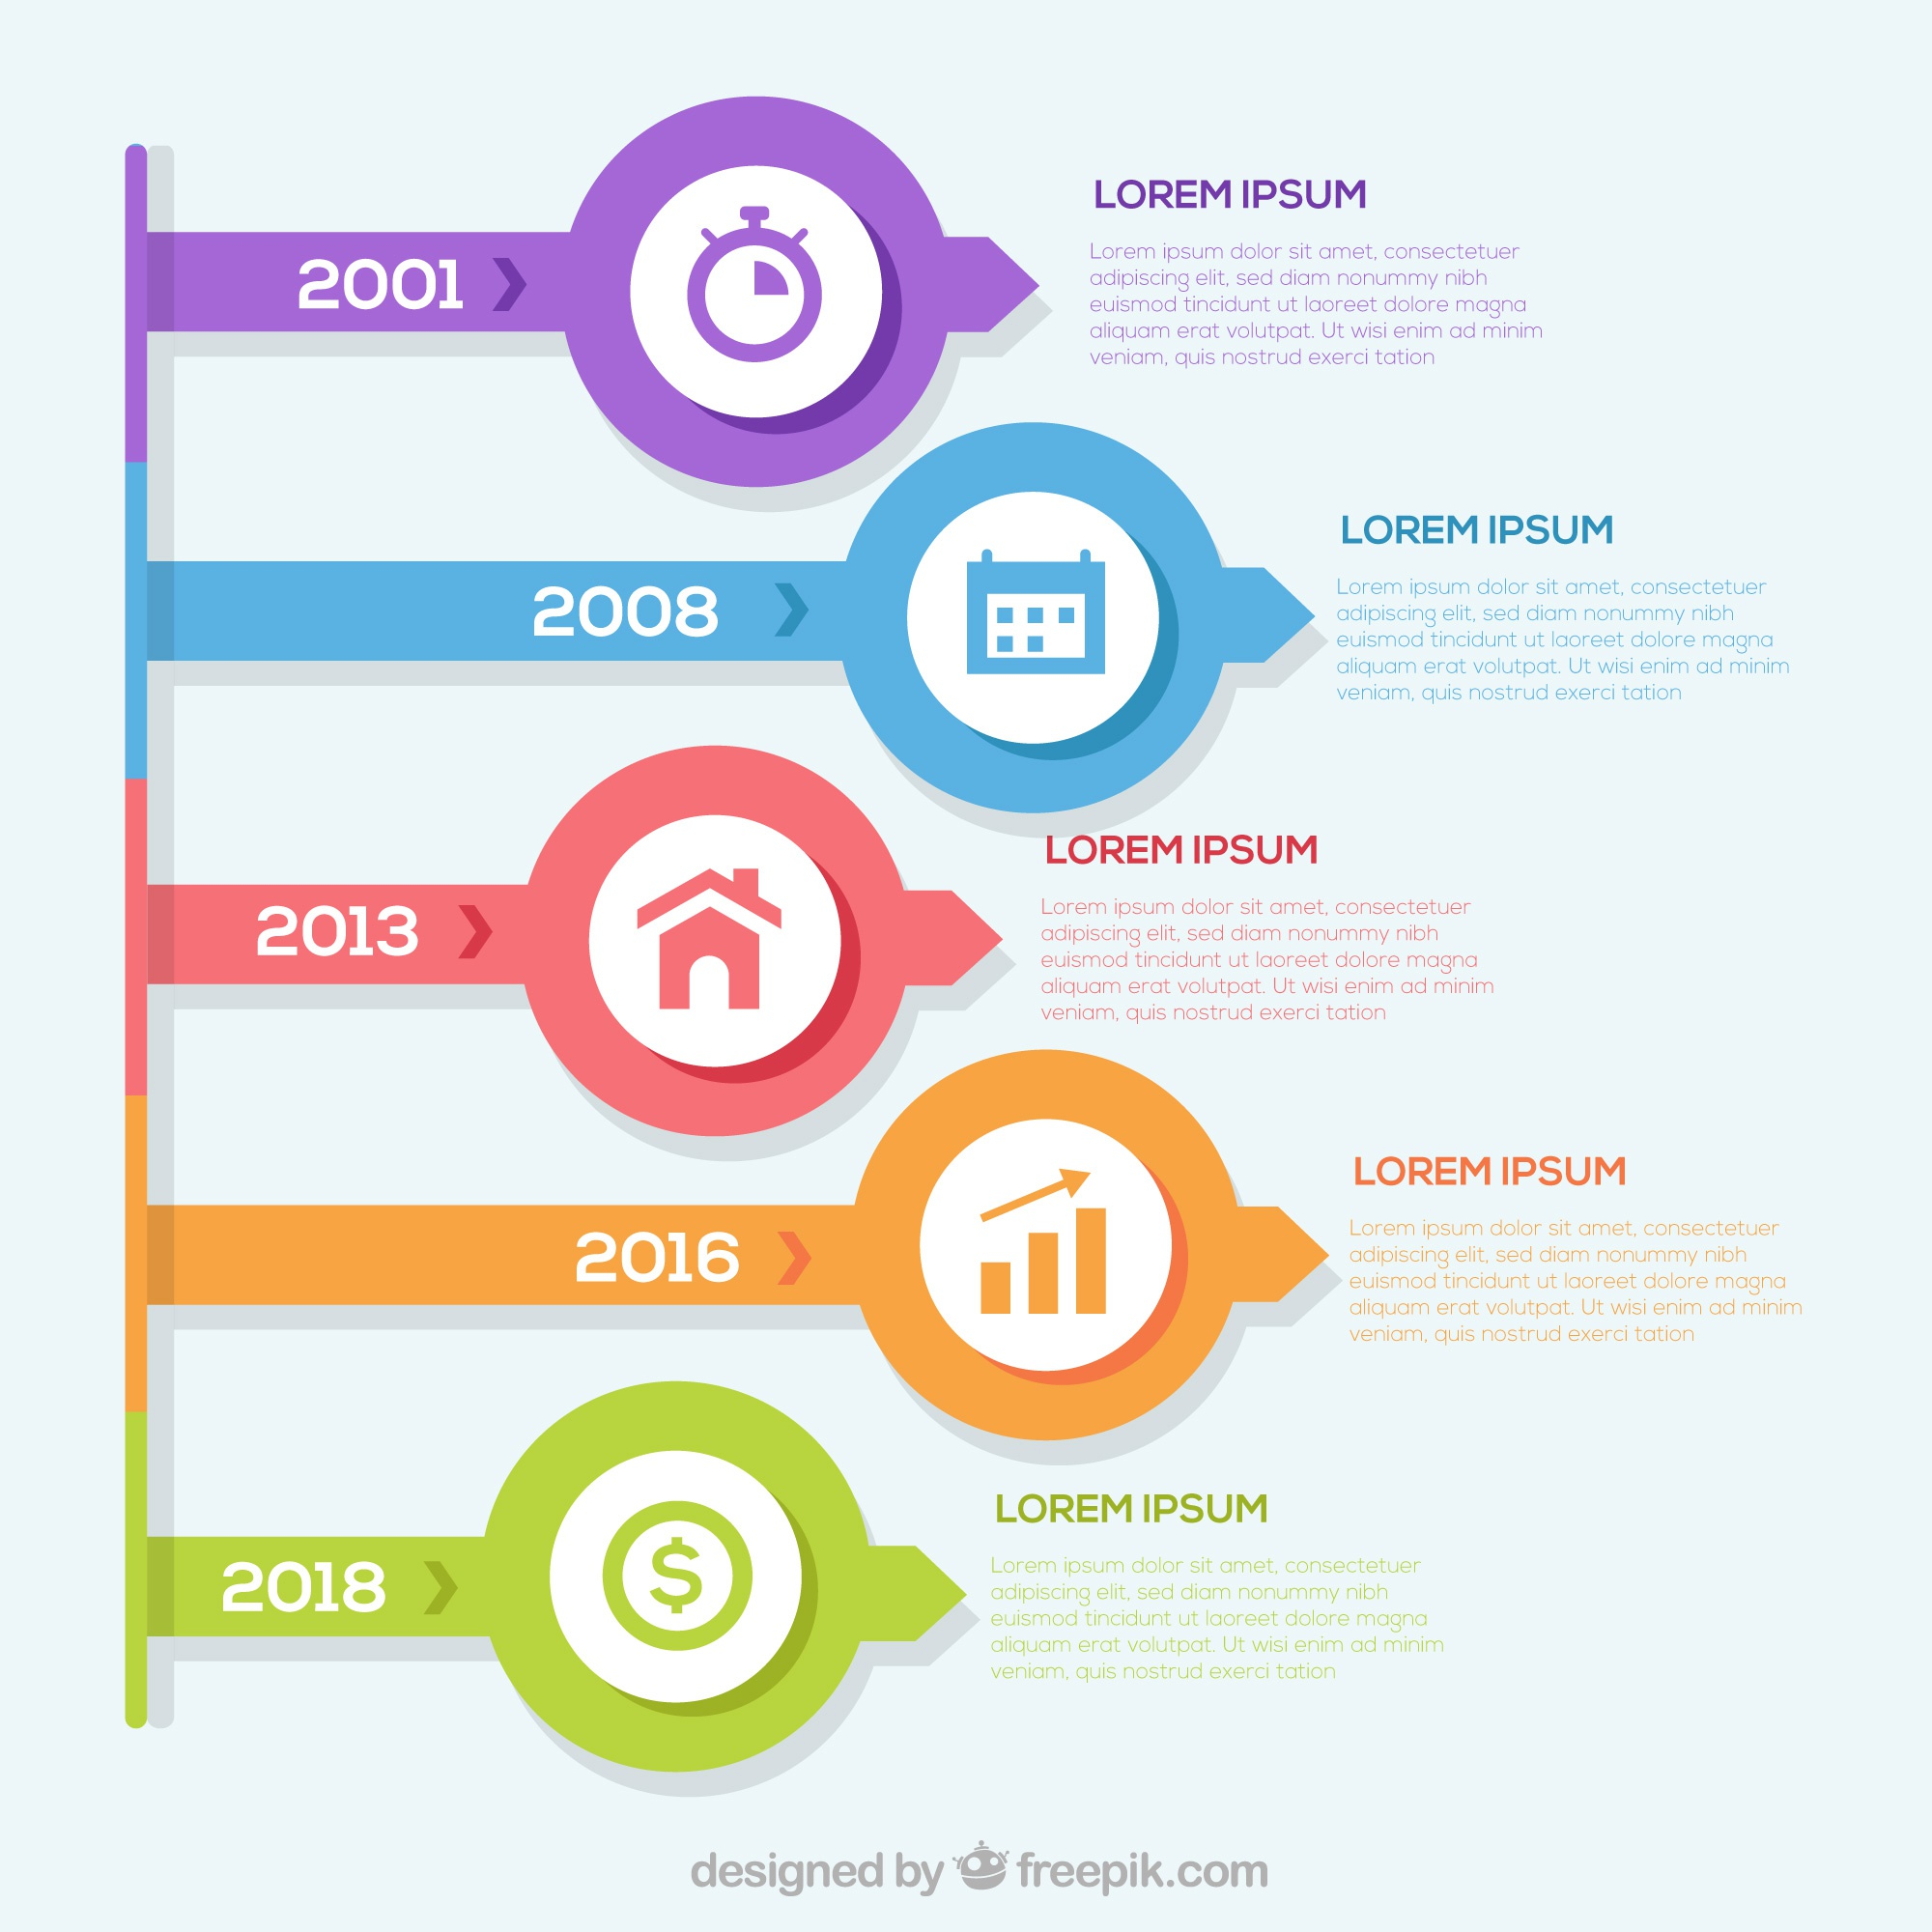 Modern infographic with timeline